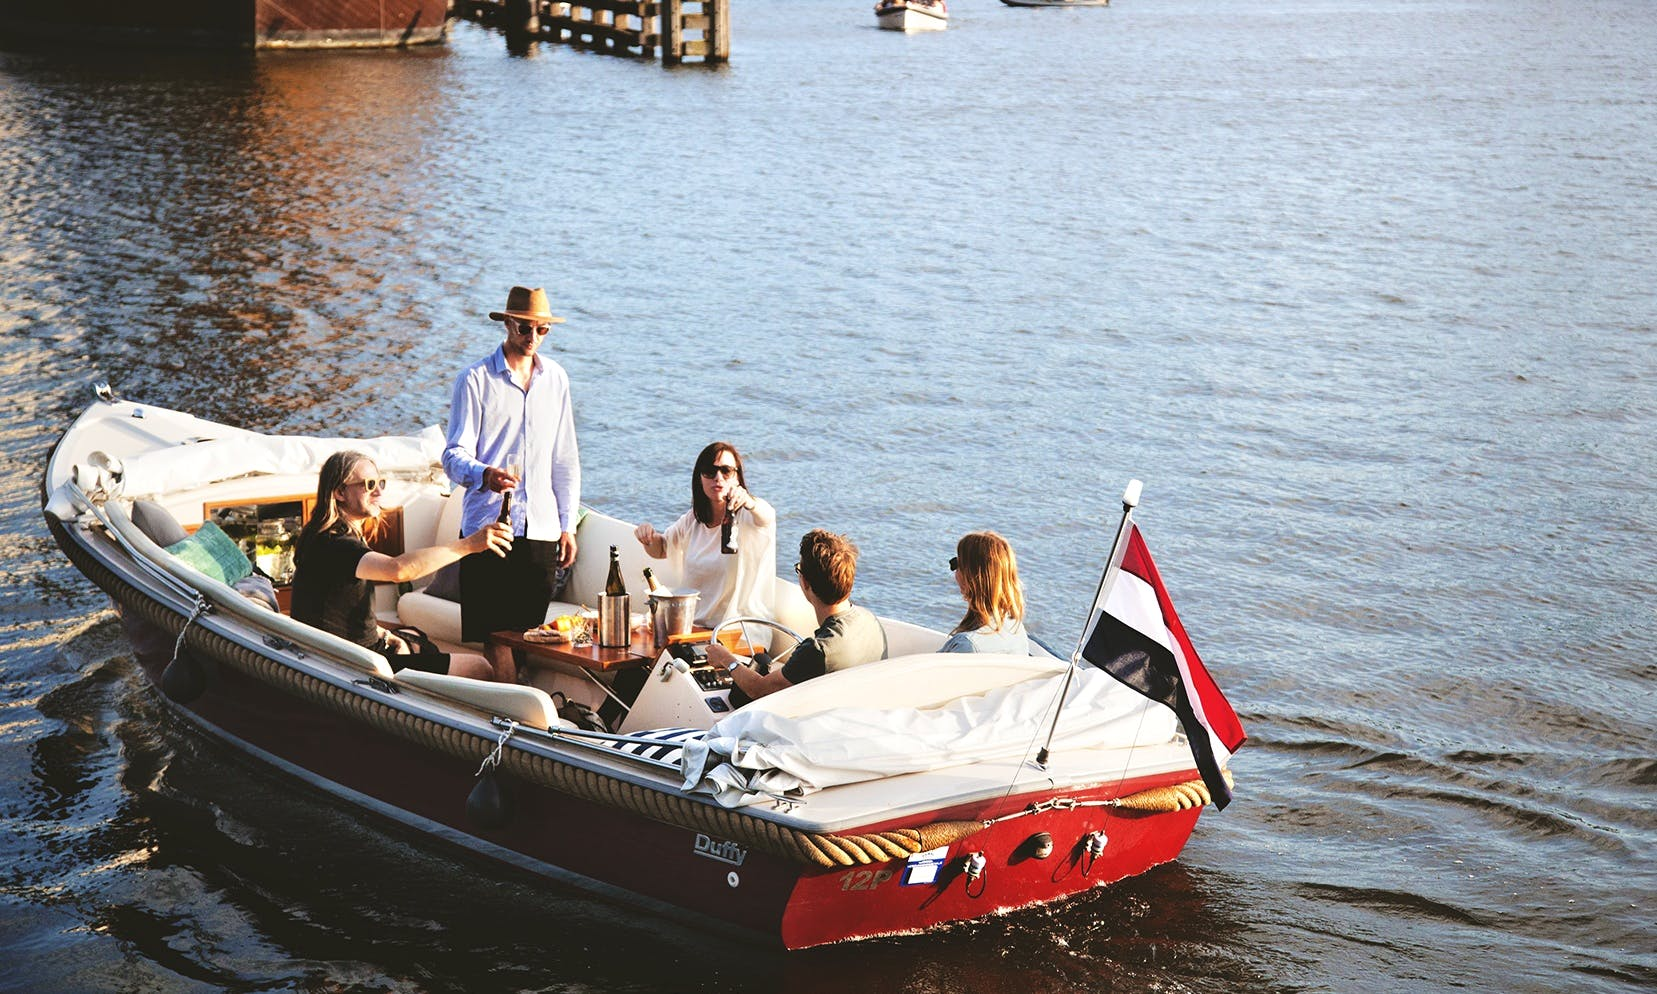 Electric Boat rental in Amsterdam